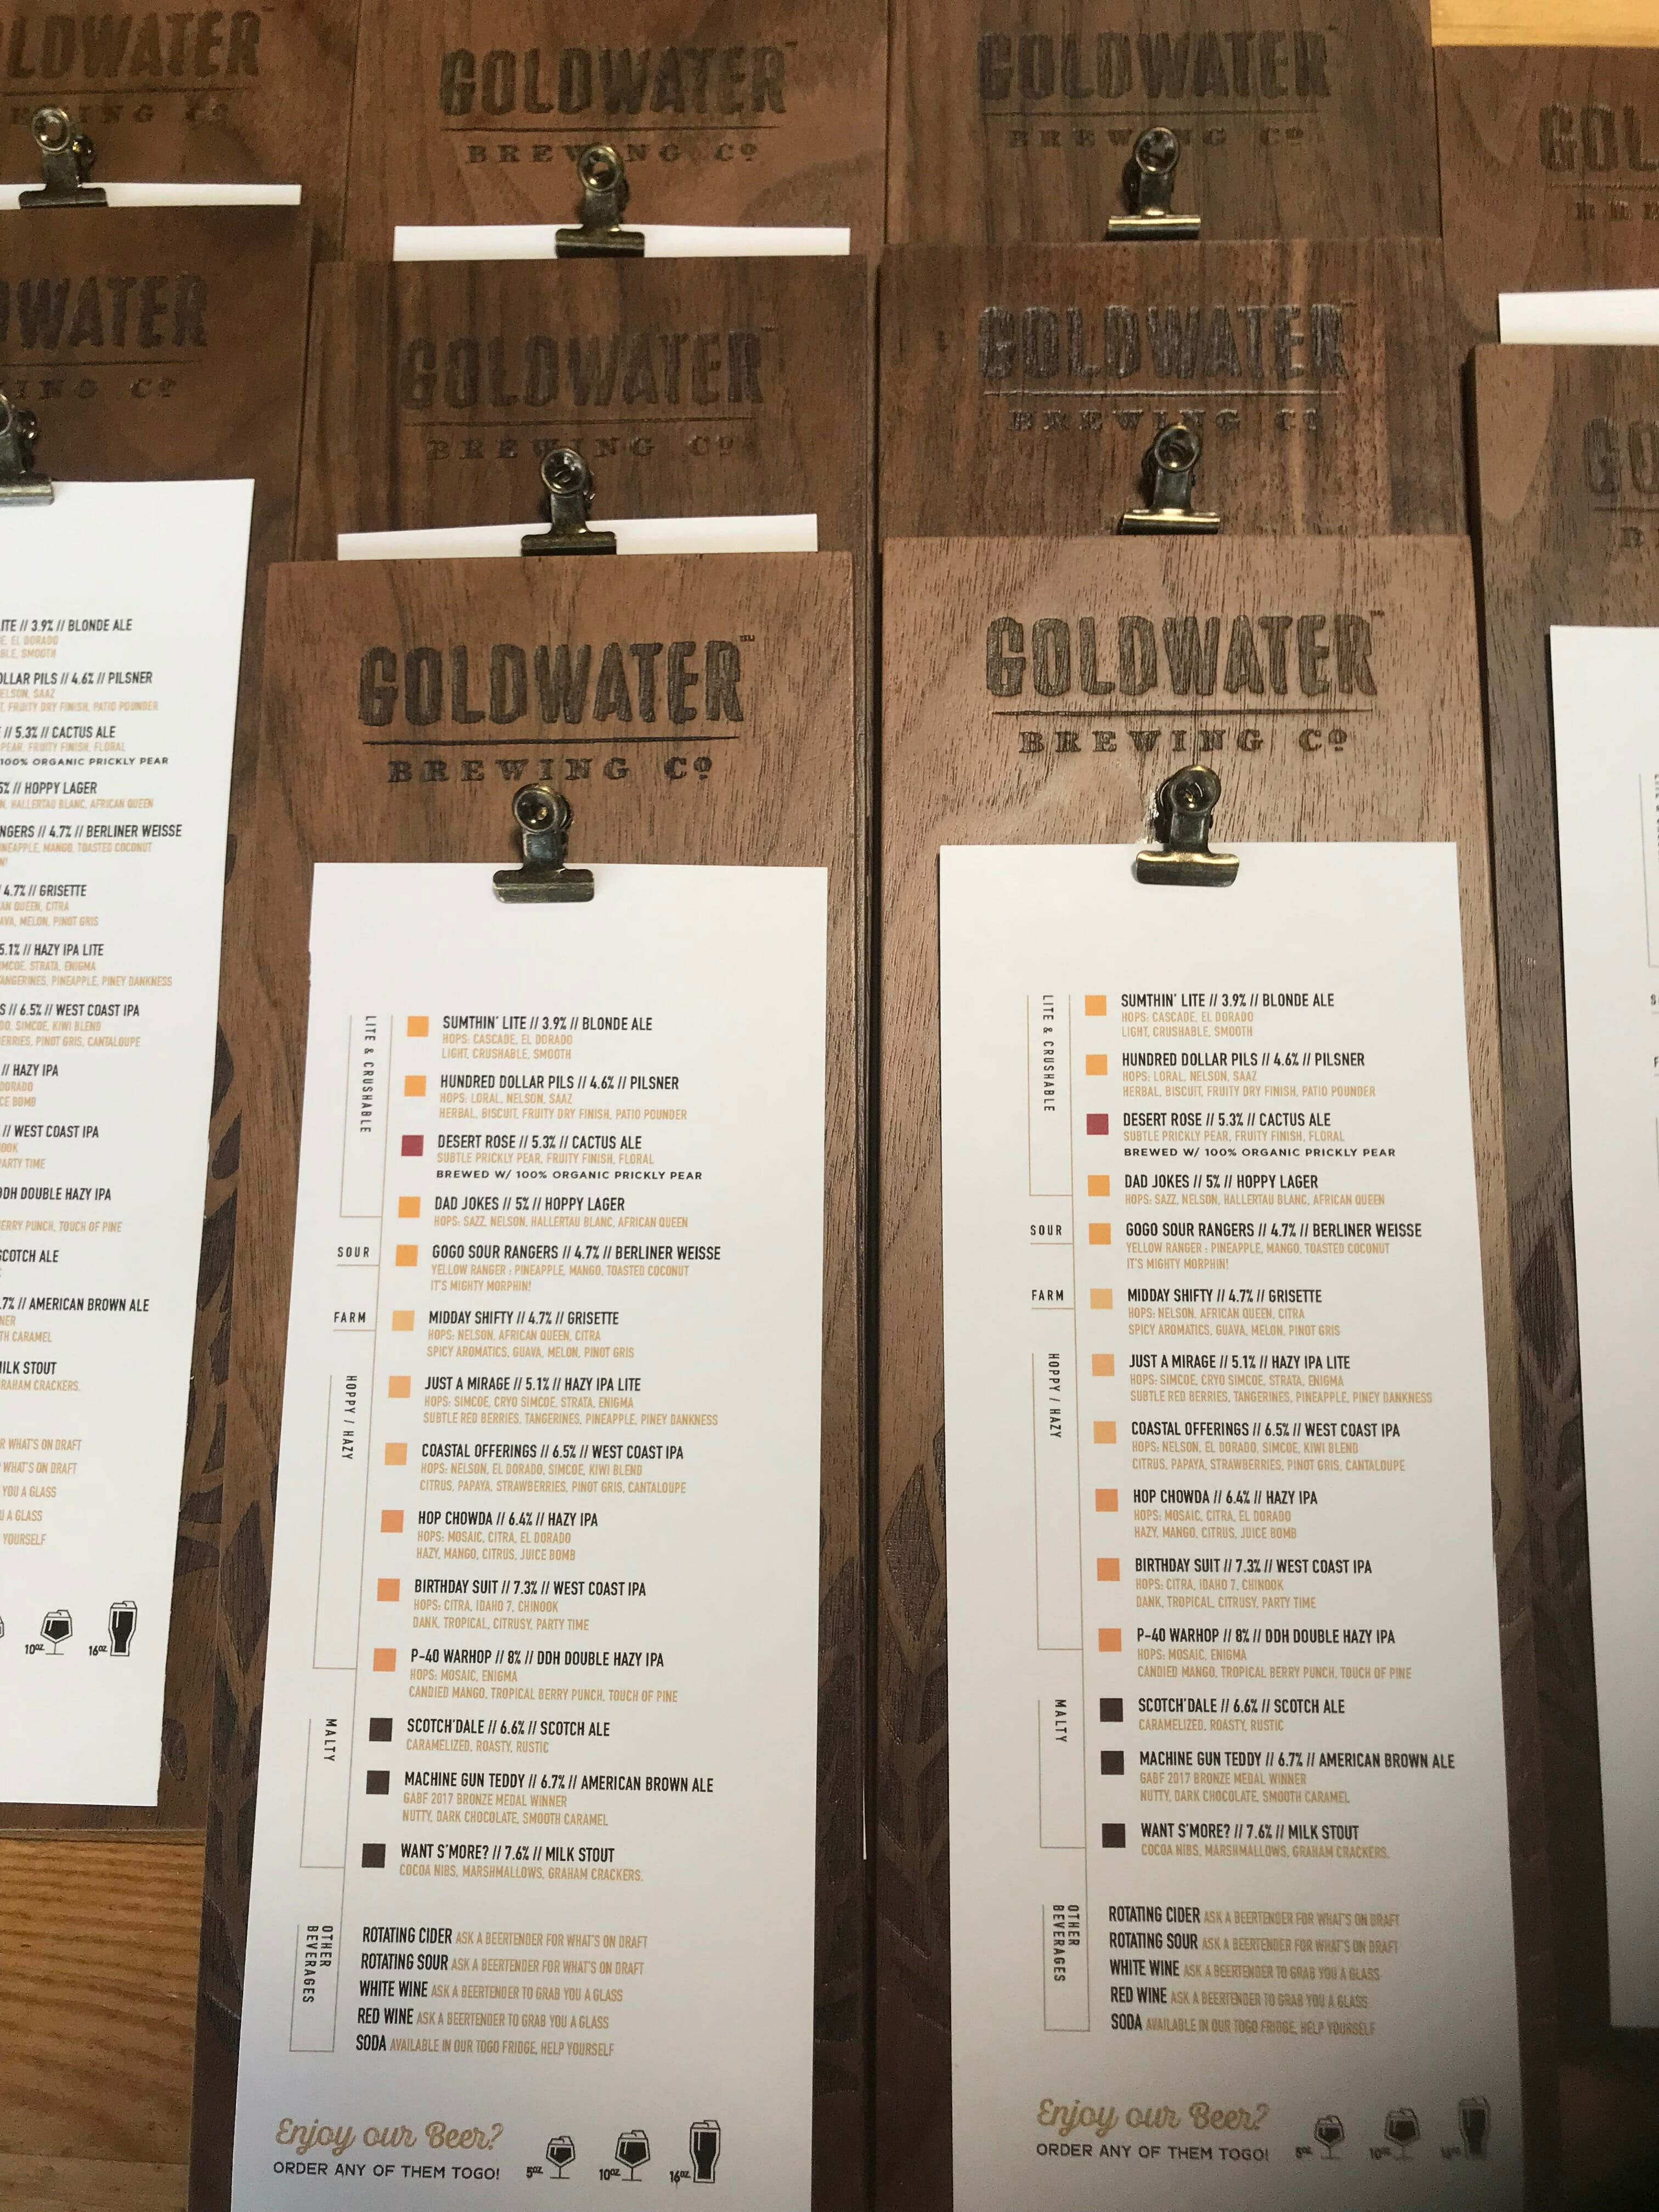 goldwater brewery menu boards (3)